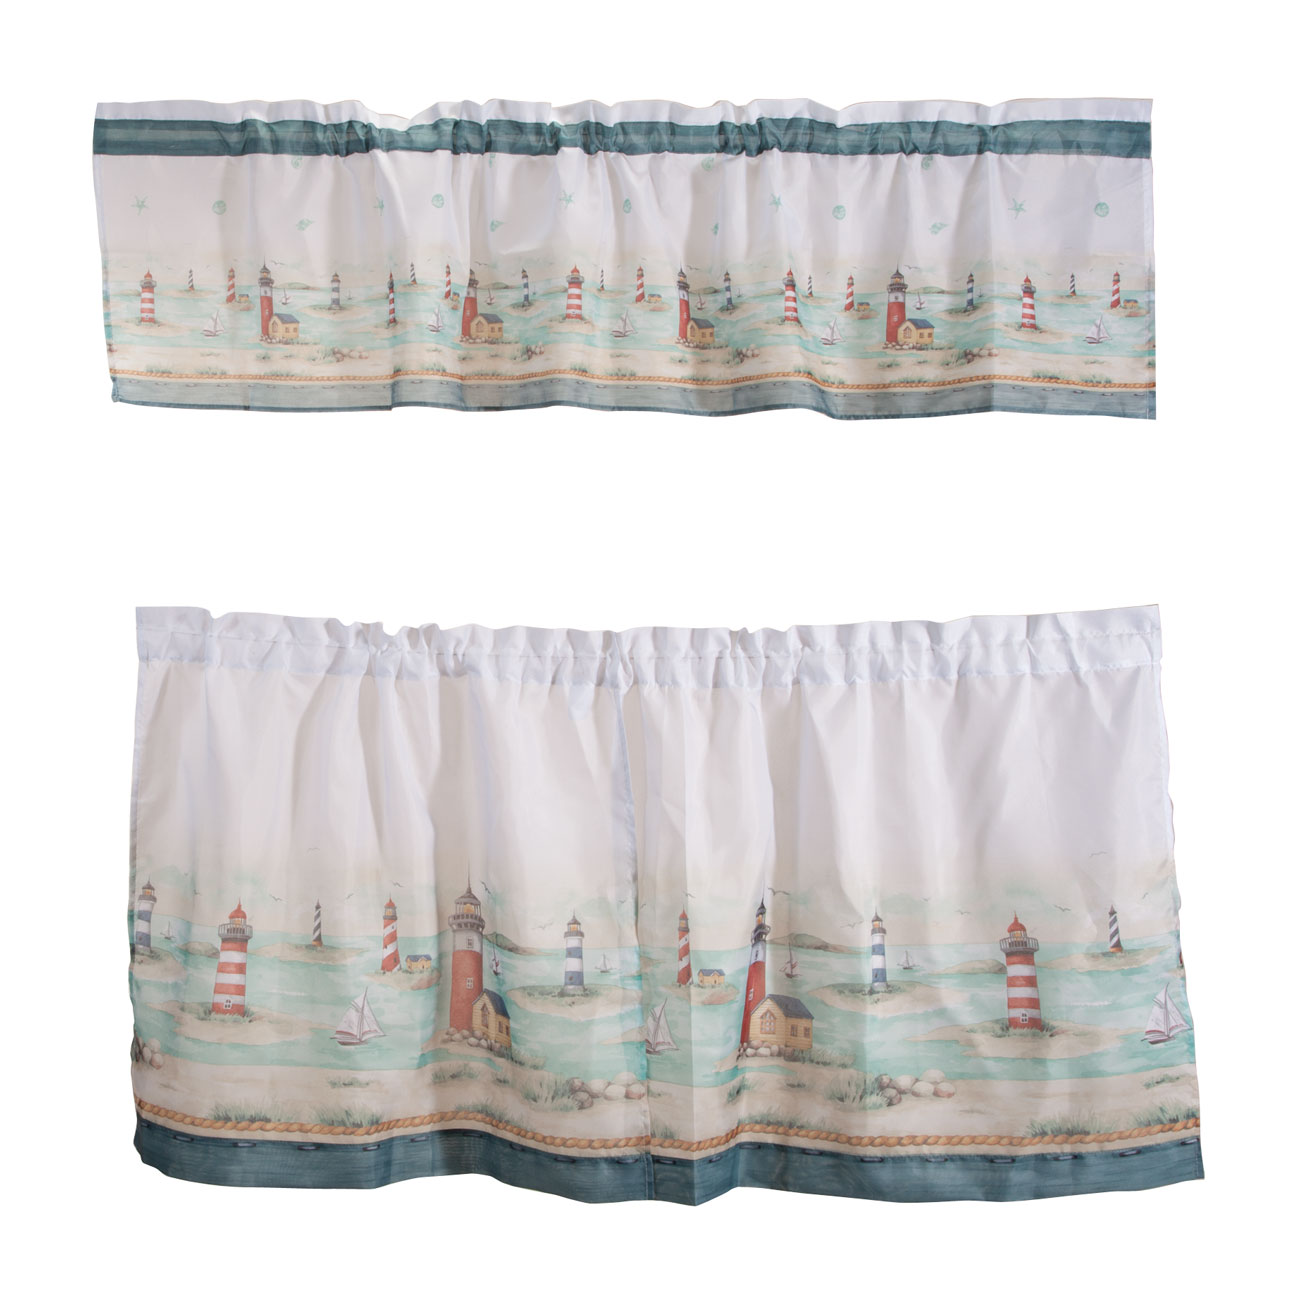 Lighthouse Kitchen Curtain & Valance Set Give your kitchen a charming coastal feel. Lighthouse kitchen curtain and valance set features lighthouses surrounded by sand and sea. With a 1  dia. x 1 1/2  H opening, these window curtains are beautiful on standard or decorative rods. Window treatment fits windows up to 36  W. Choose from 2 sizes: 58  x 24  includes 58  W x 13  H valance and pair of 58  W x 24  H tiers; 58  x 36  includes 58  W x 13  H valance and pair of 58  W x 36  H tiers. Easy-care 100% polyester. Machine wash cold, delicate cycle; tumble dry low.